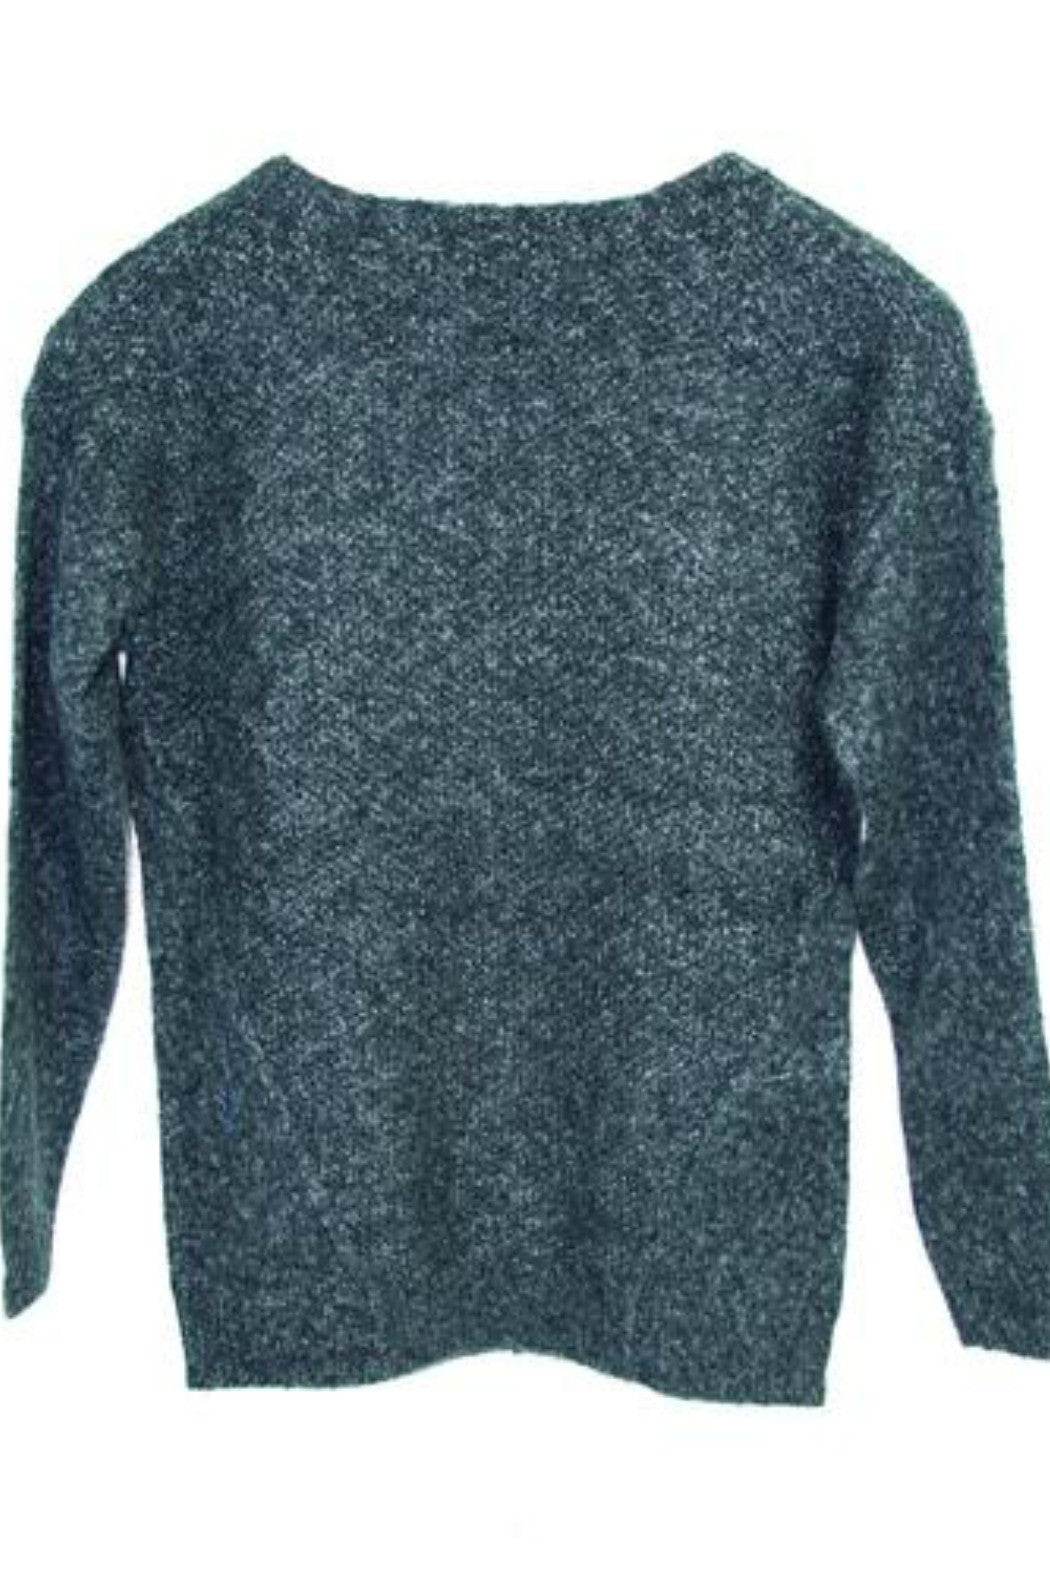 V-Neck Pullover Sweater - R+D Hipster Emporium | Womens & Mens Clothing - 2